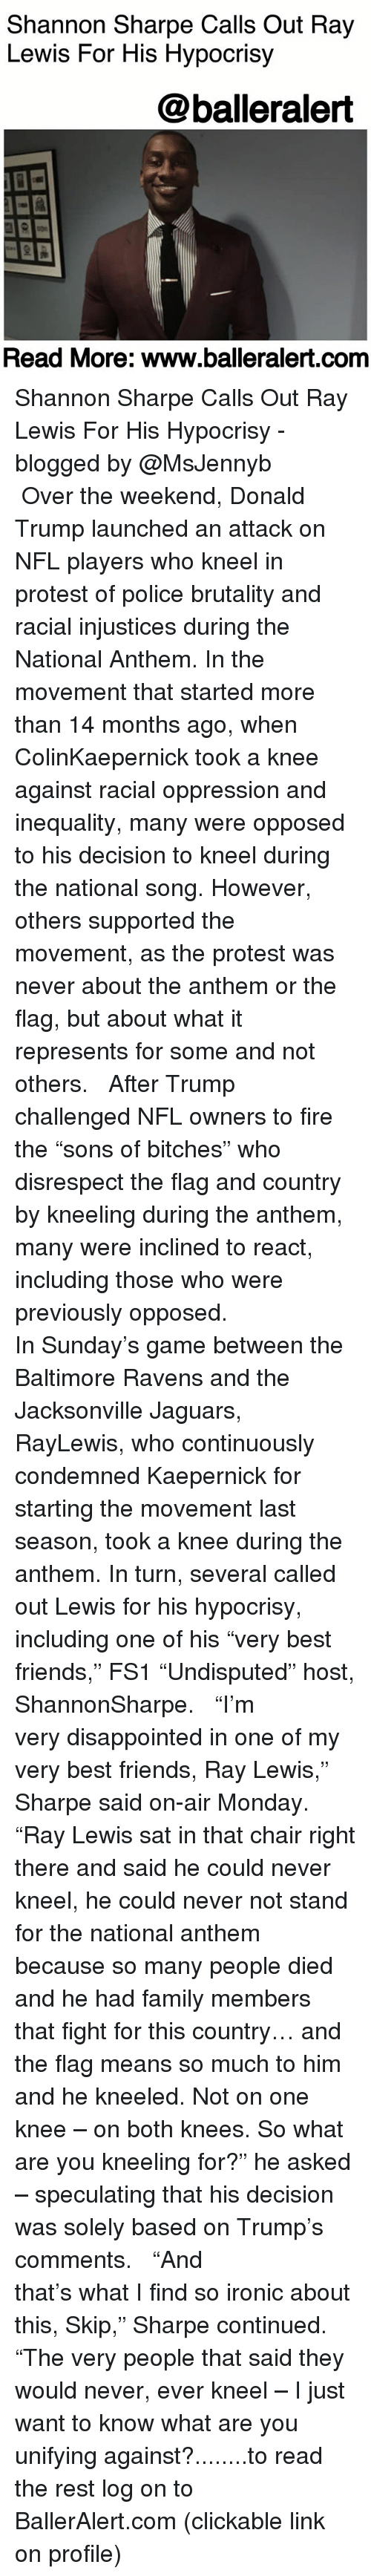 """Ray Lewis: Shannon Sharpe Calls Out Ray  Lewis For His Hypocrisy  @balleralert  Read More: www.balleralert.conm Shannon Sharpe Calls Out Ray Lewis For His Hypocrisy - blogged by @MsJennyb ⠀⠀⠀⠀⠀⠀⠀ ⠀⠀⠀⠀⠀⠀⠀ Over the weekend, Donald Trump launched an attack on NFL players who kneel in protest of police brutality and racial injustices during the National Anthem. In the movement that started more than 14 months ago, when ColinKaepernick took a knee against racial oppression and inequality, many were opposed to his decision to kneel during the national song. However, others supported the movement, as the protest was never about the anthem or the flag, but about what it represents for some and not others. ⠀⠀⠀⠀⠀⠀⠀ ⠀⠀⠀⠀⠀⠀⠀ After Trump challenged NFL owners to fire the """"sons of bitches"""" who disrespect the flag and country by kneeling during the anthem, many were inclined to react, including those who were previously opposed. ⠀⠀⠀⠀⠀⠀⠀ ⠀⠀⠀⠀⠀⠀⠀ In Sunday's game between the Baltimore Ravens and the Jacksonville Jaguars, RayLewis, who continuously condemned Kaepernick for starting the movement last season, took a knee during the anthem. In turn, several called out Lewis for his hypocrisy, including one of his """"very best friends,"""" FS1 """"Undisputed"""" host, ShannonSharpe. ⠀⠀⠀⠀⠀⠀⠀ ⠀⠀⠀⠀⠀⠀⠀ """"I'm very disappointed in one of my very best friends, Ray Lewis,"""" Sharpe said on-air Monday. """"Ray Lewis sat in that chair right there and said he could never kneel, he could never not stand for the national anthem because so many people died and he had family members that fight for this country… and the flag means so much to him and he kneeled. Not on one knee – on both knees. So what are you kneeling for?"""" he asked – speculating that his decision was solely based on Trump's comments. ⠀⠀⠀⠀⠀⠀⠀ ⠀⠀⠀⠀⠀⠀⠀ """"And that's what I find so ironic about this, Skip,"""" Sharpe continued. """"The very people that said they would never, ever kneel – I just want to know what are you unifying against?........to read the rest lo"""